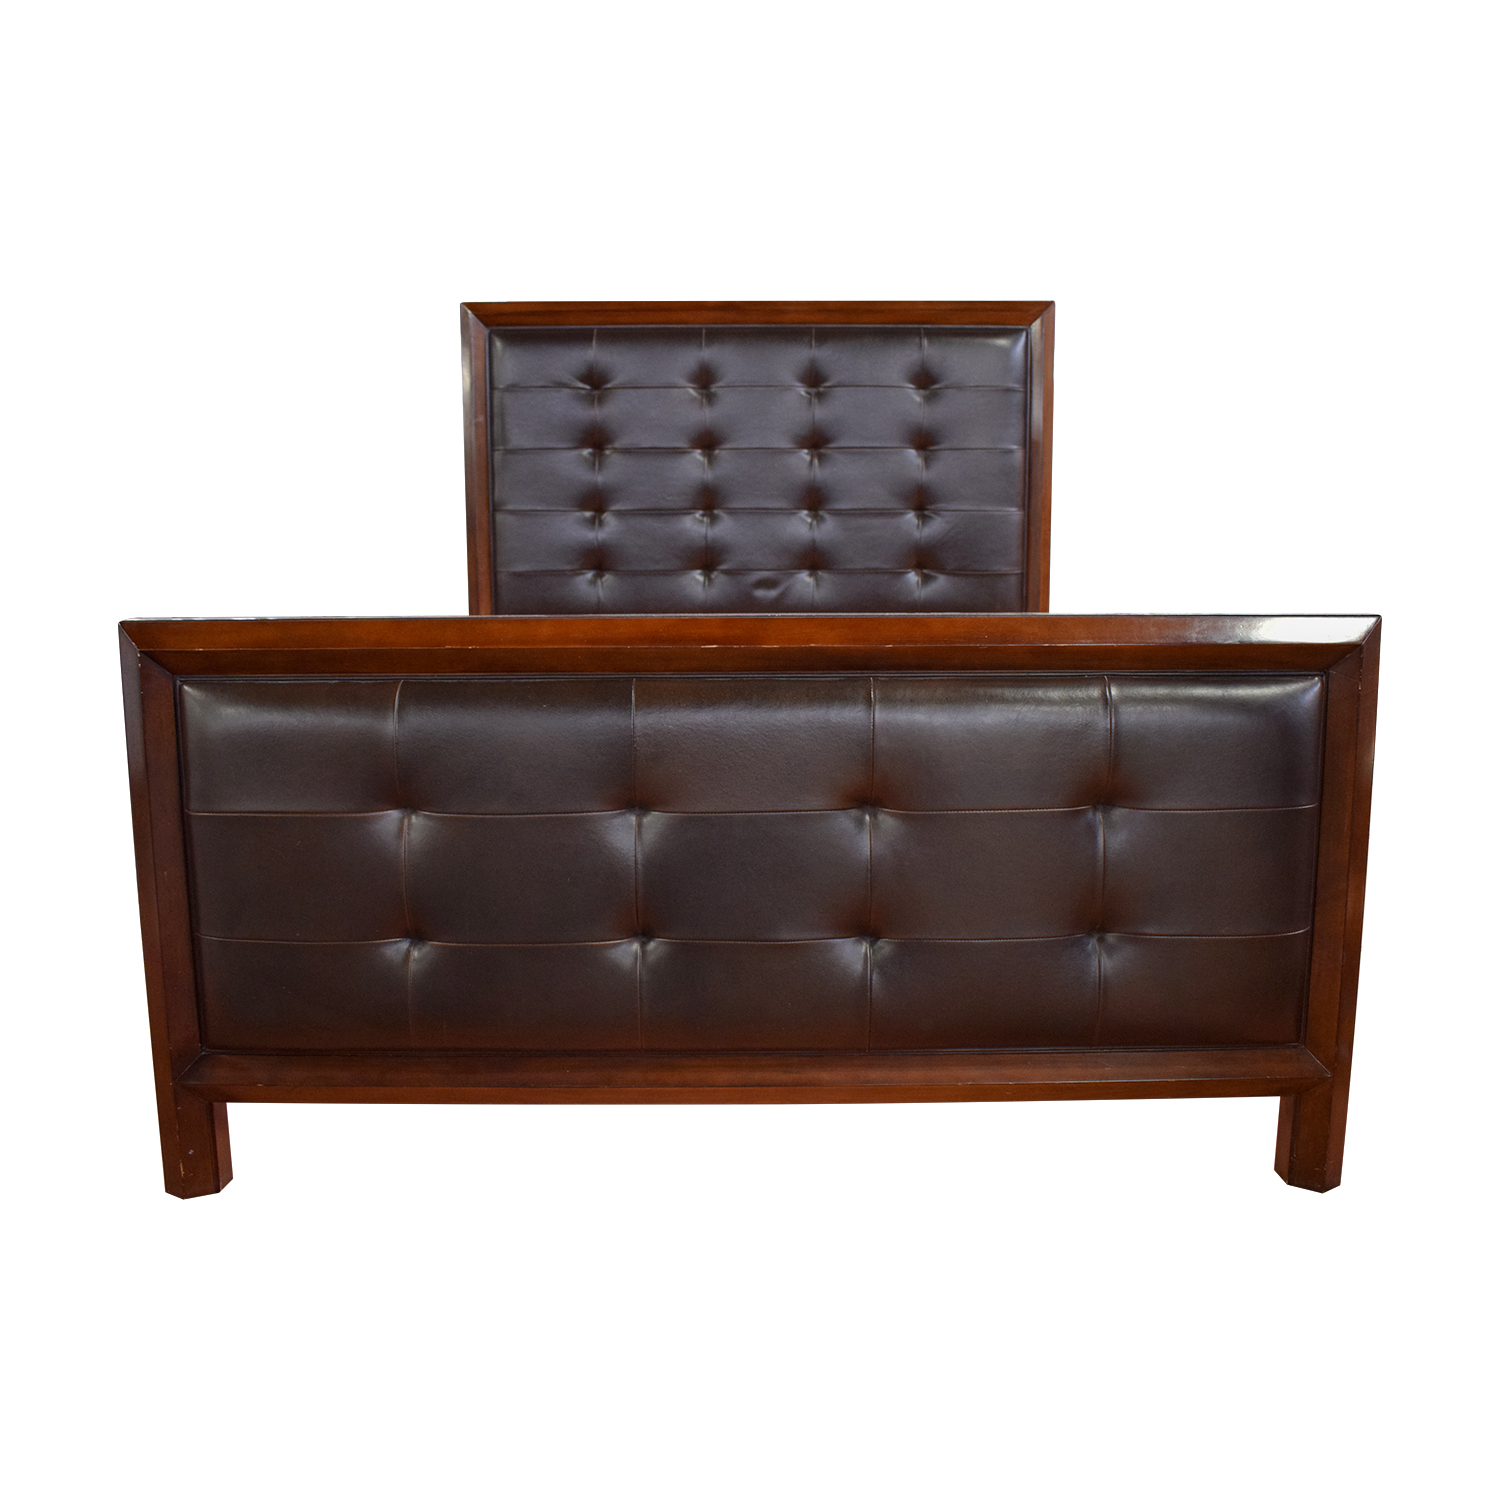 Tufted Brown Leather and Wood Queen Bed Frame on sale